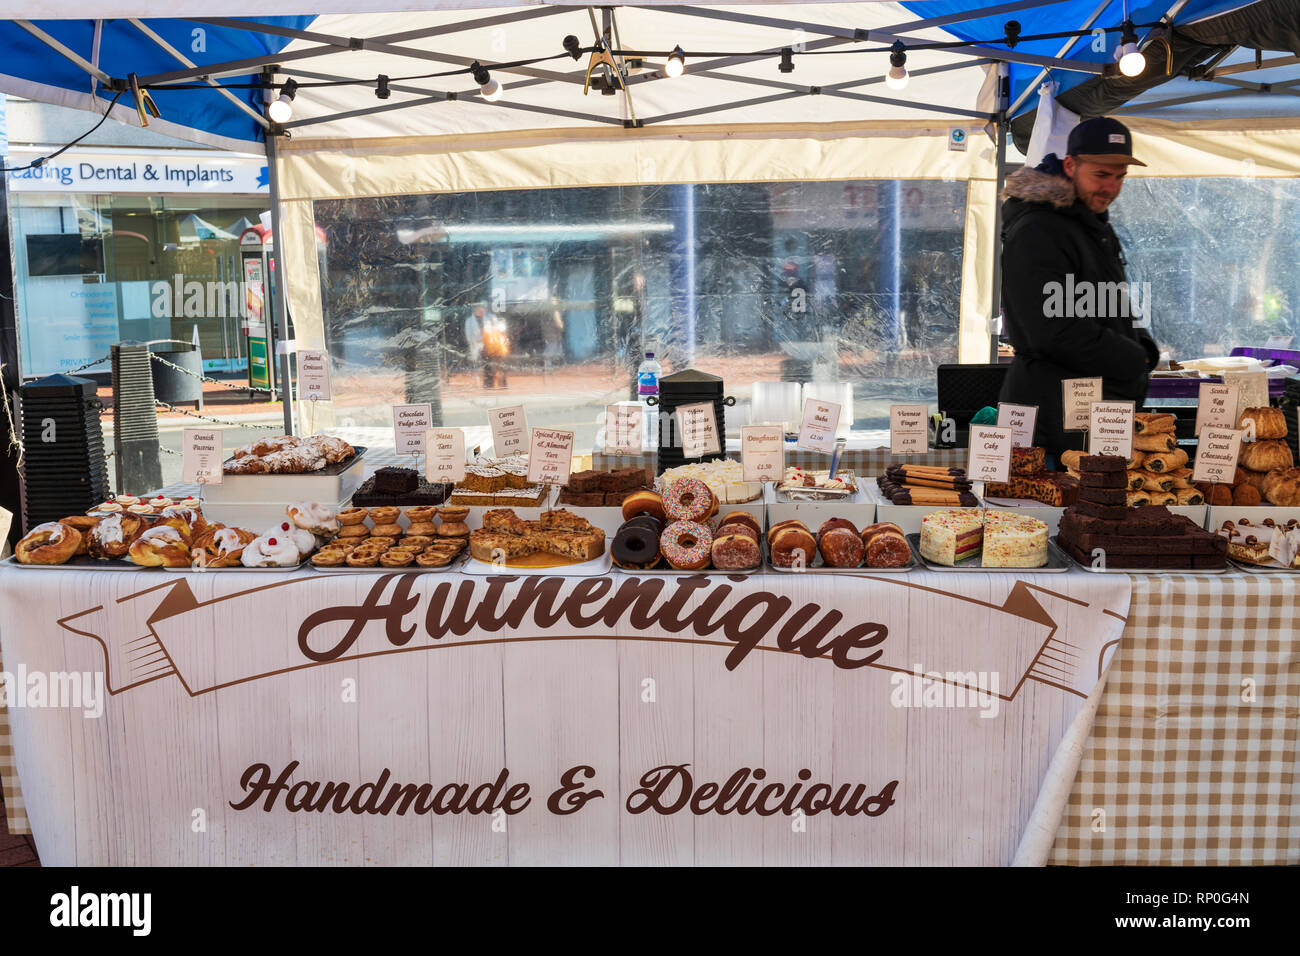 Street food market in Reading, UK - Stock Image